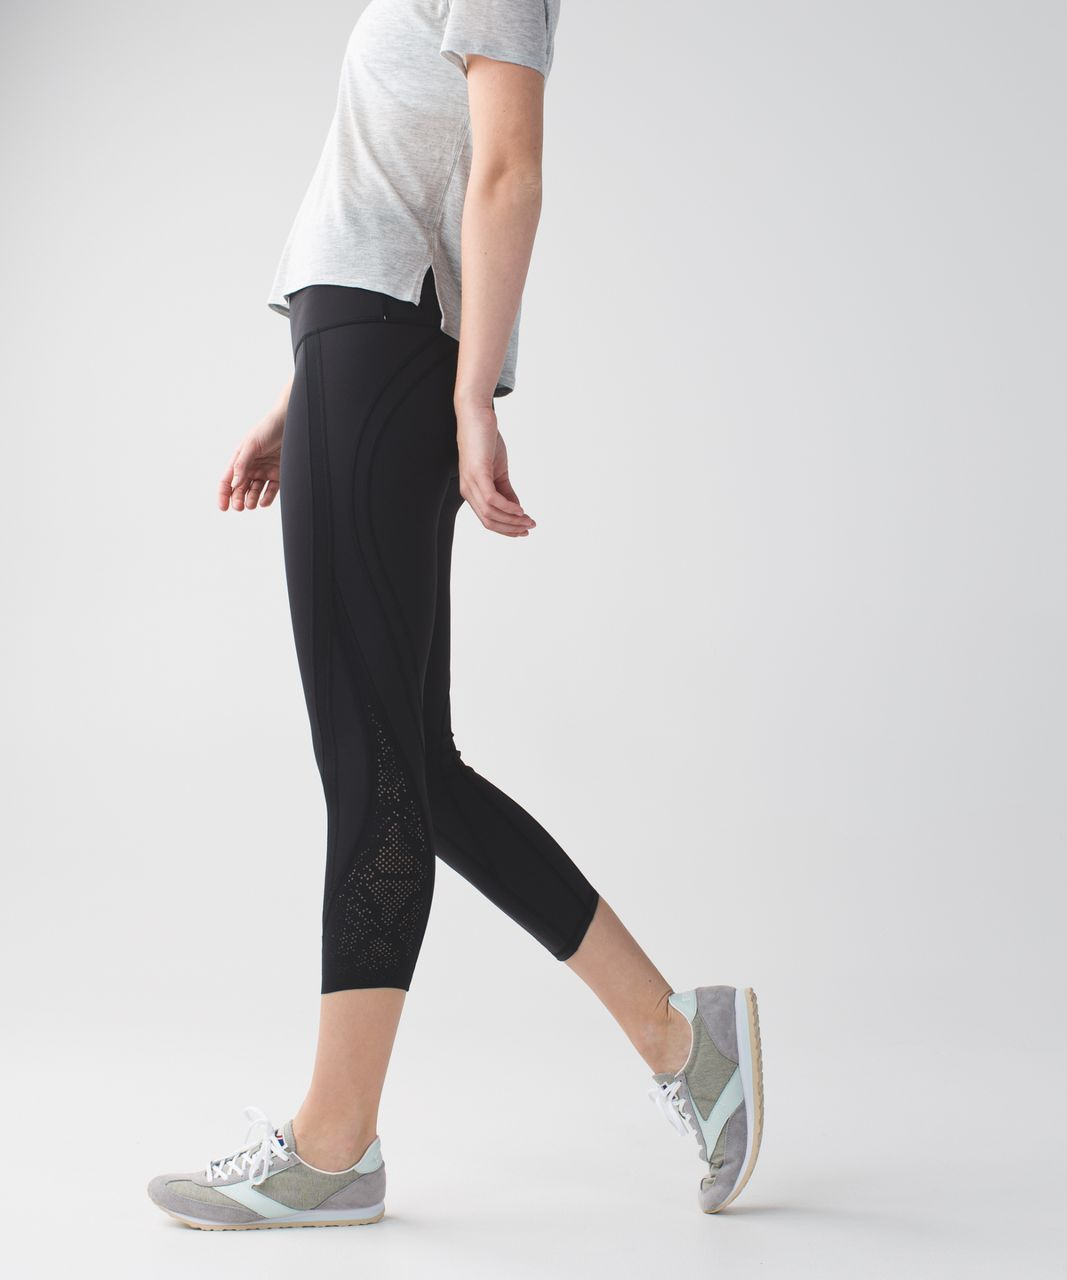 Lululemon Wunder Under Crop (Laser) *Full-On Luon - Black